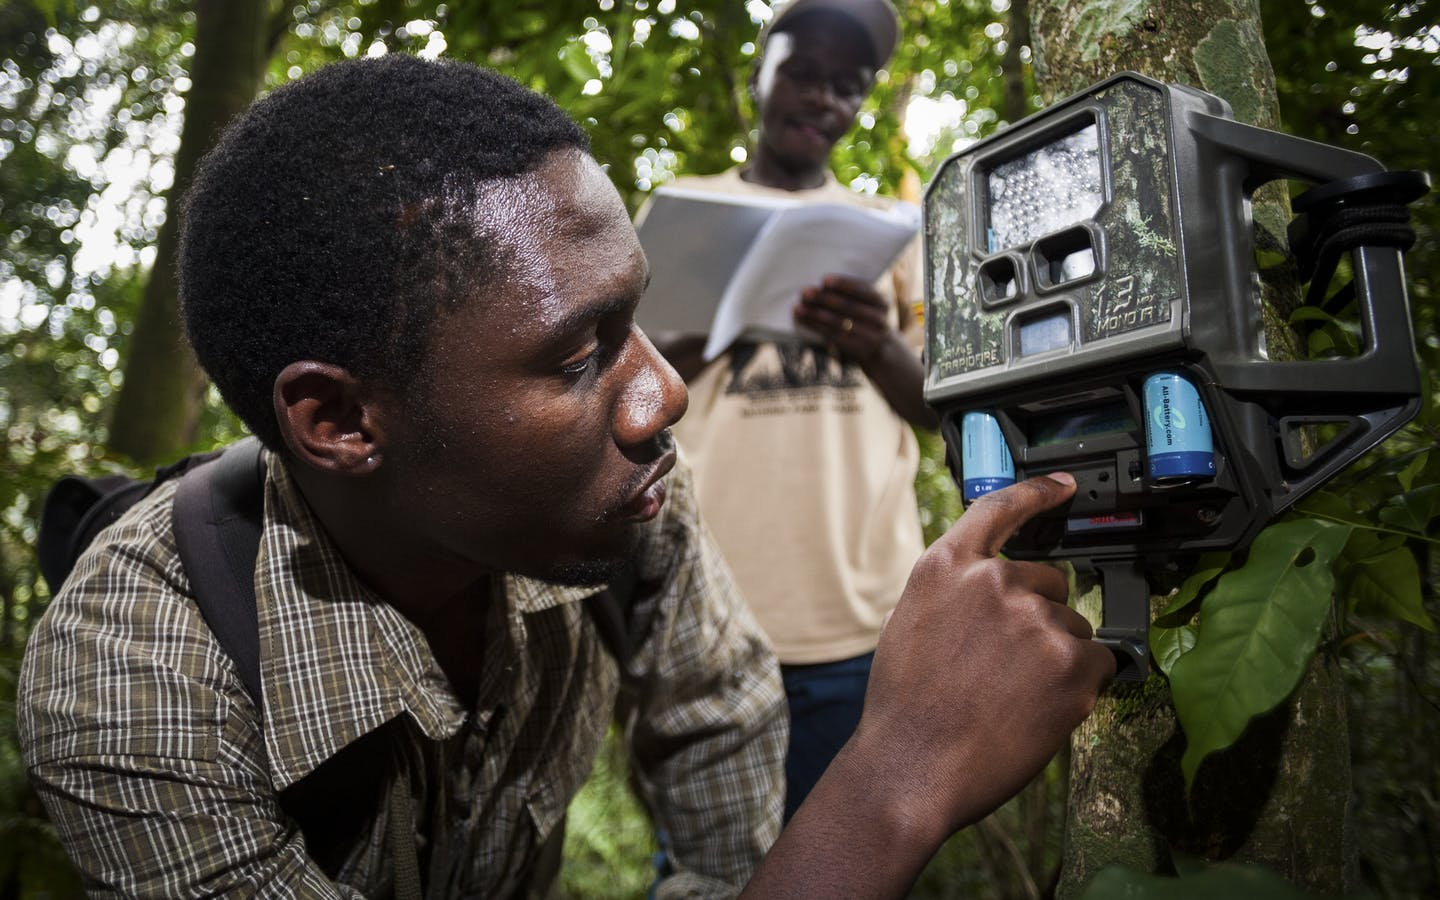 Badru Mugerwa and Lawrence Tumugabirwe set camera trap in Kenya